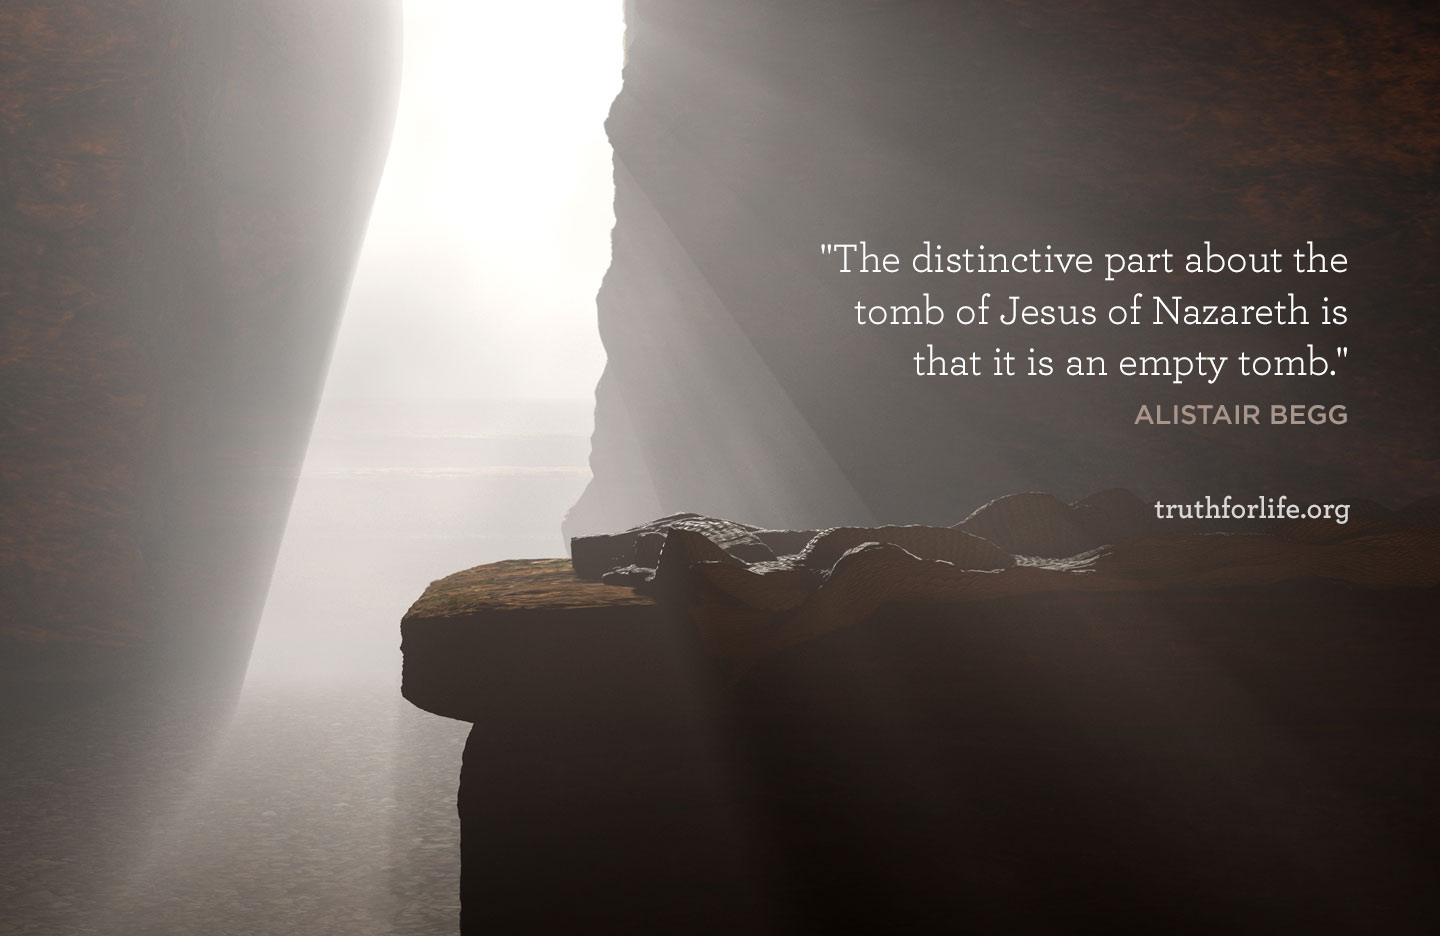 The distinctive part about the tomb of Jesus of Nazareth is that it is an empty tomb.